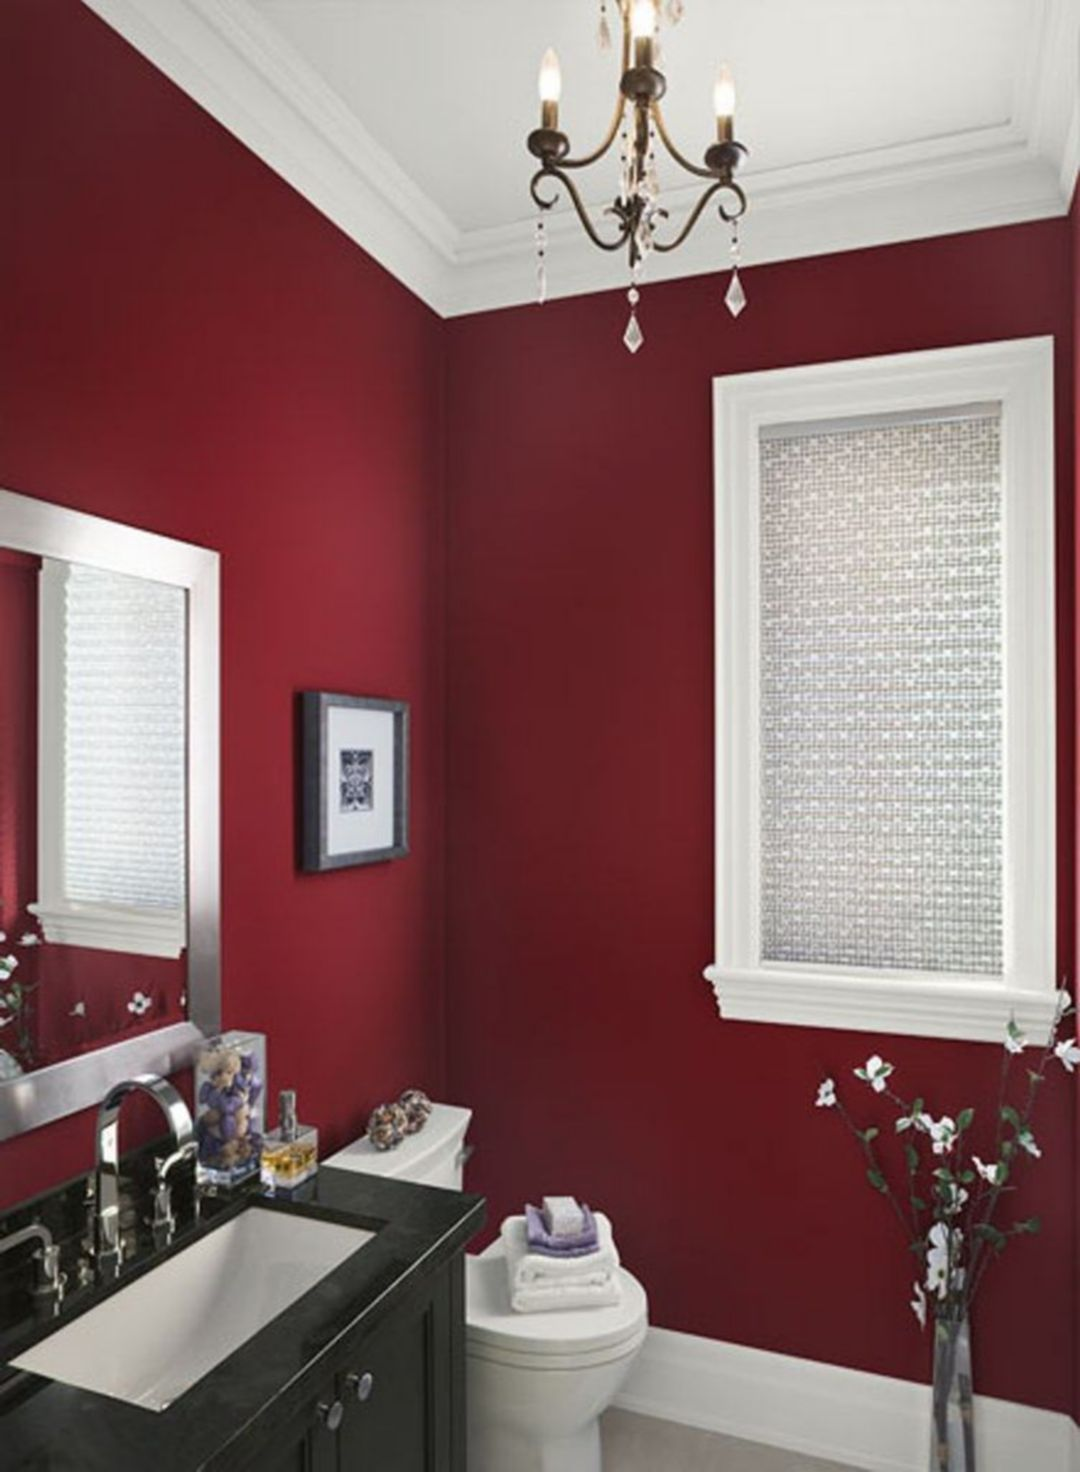 Fabulous Red Black and White Bathroom Decor Ideas 10 | Red ...